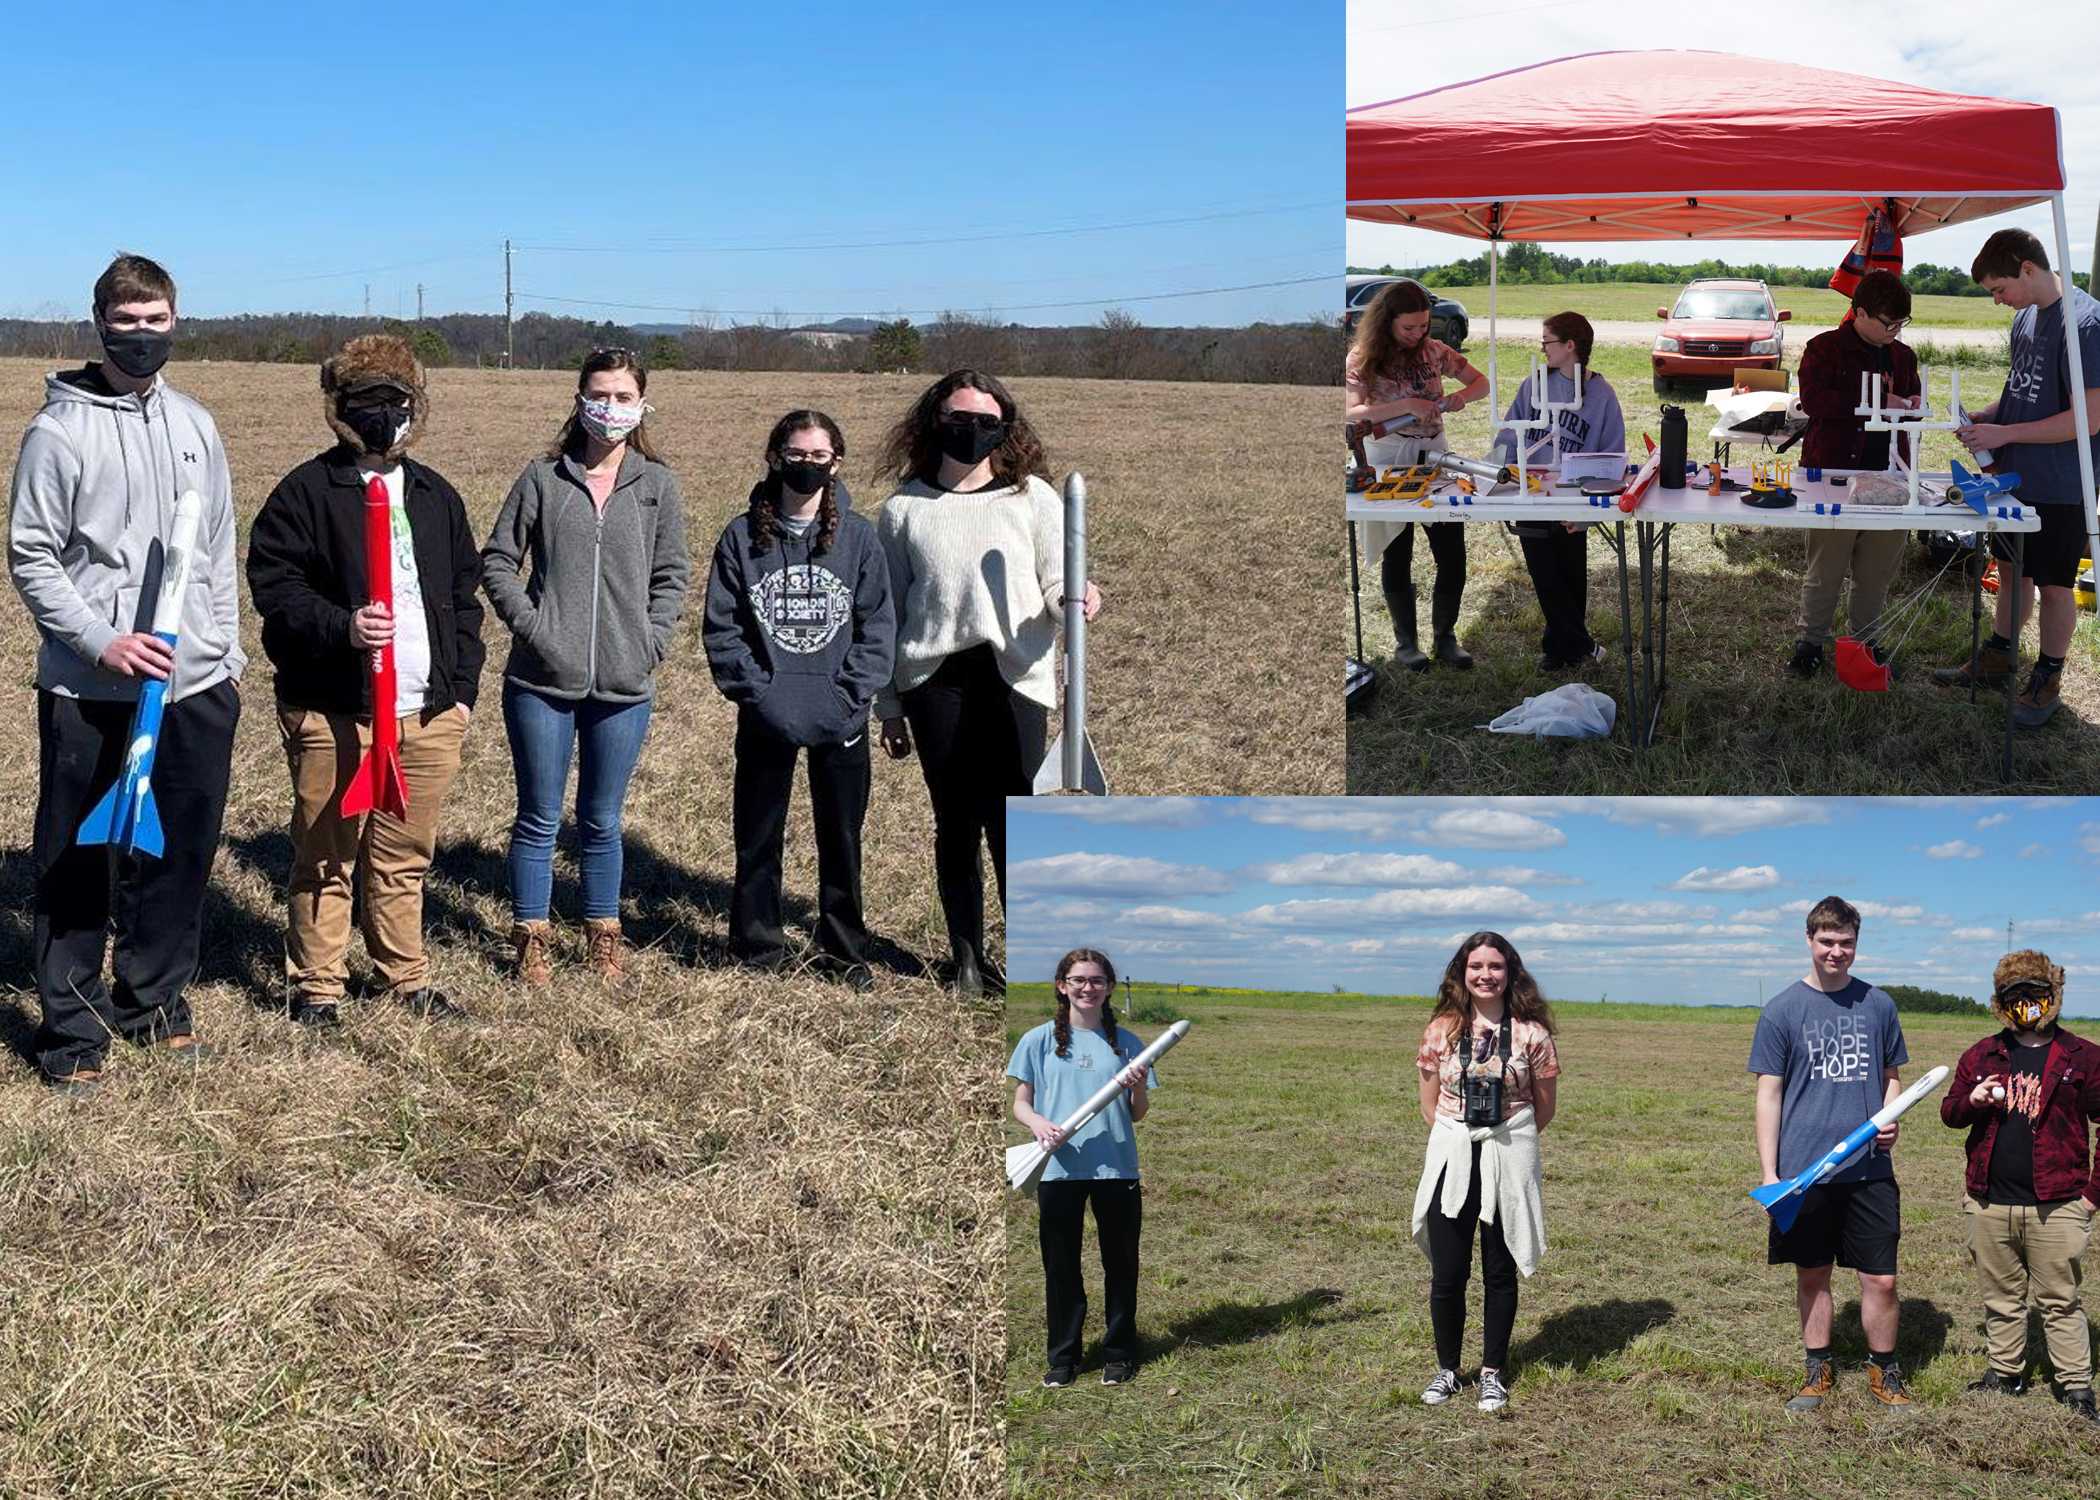 Local students to compete in world's largest student rocket contest